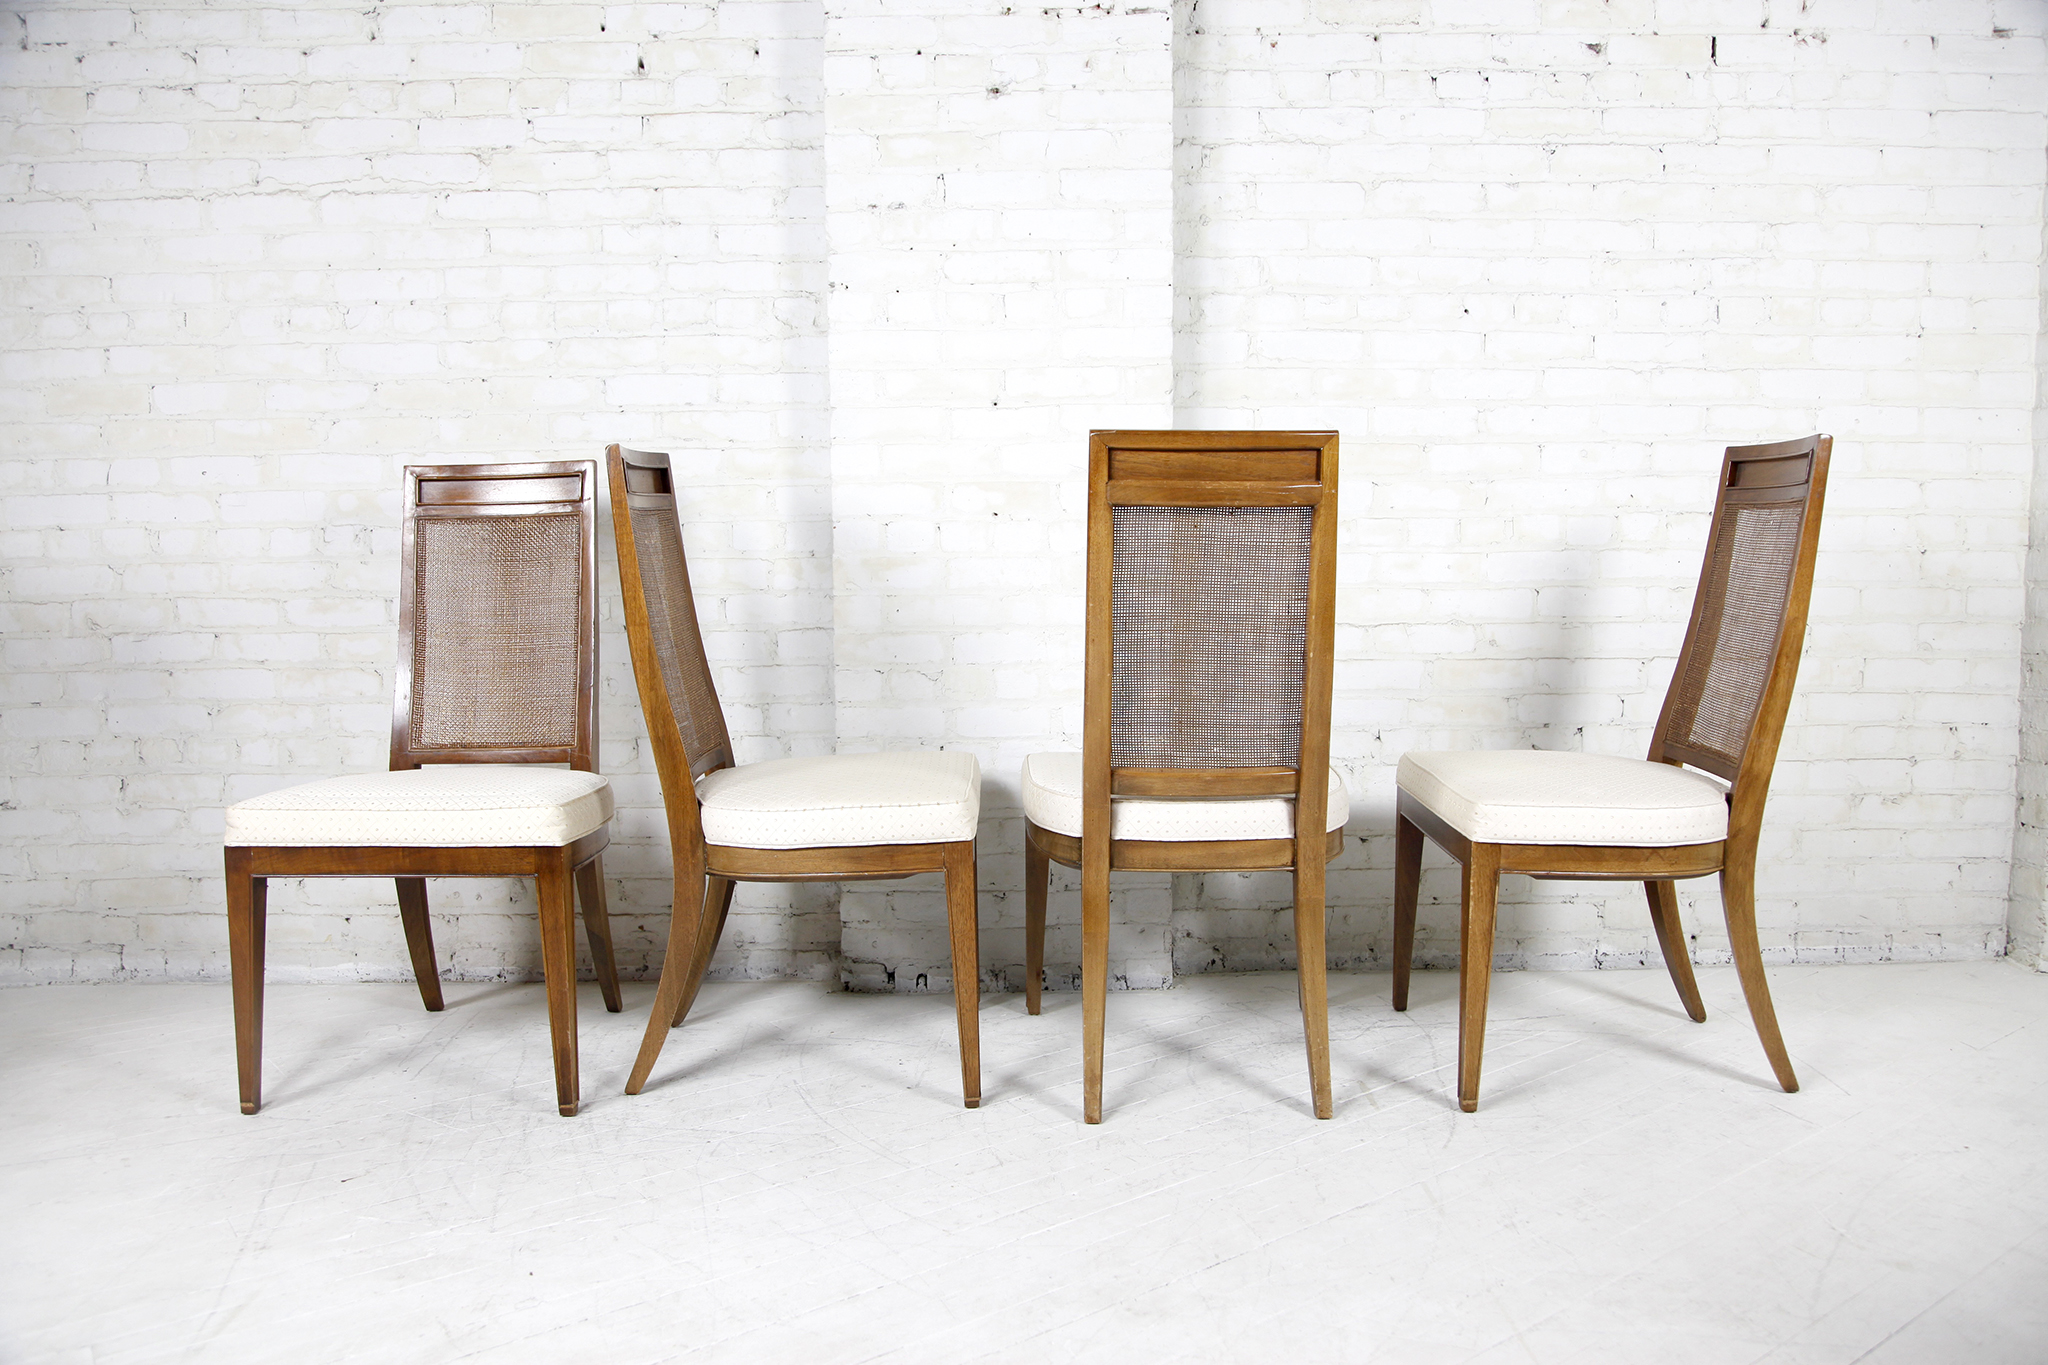 Kinosessel Kaufen Nürnberg Dining Chairs Tall